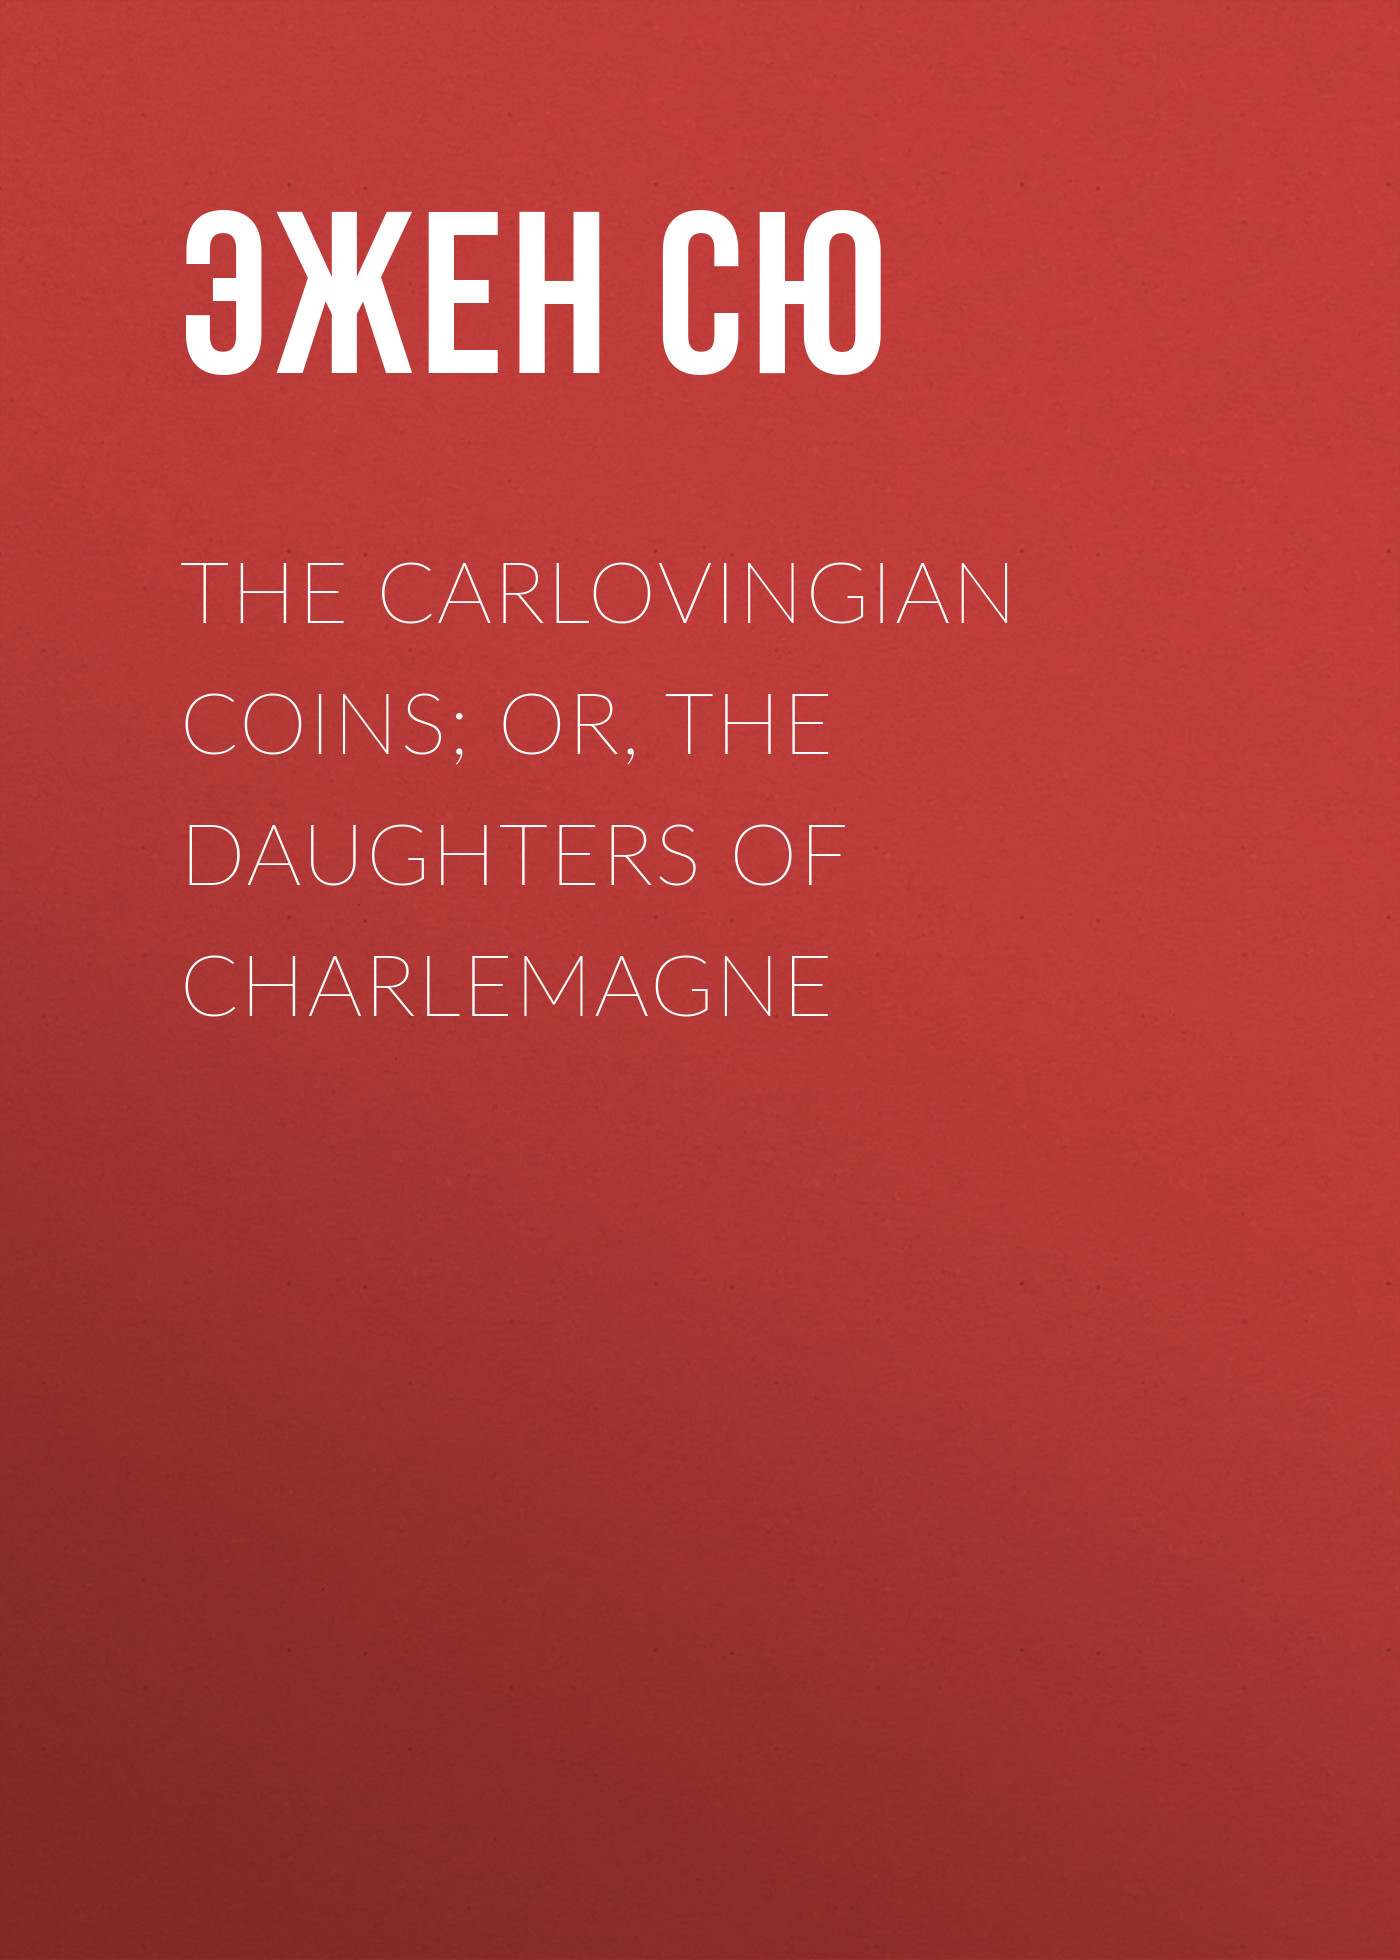 Эжен Сю The Carlovingian Coins; Or, The Daughters of Charlemagne